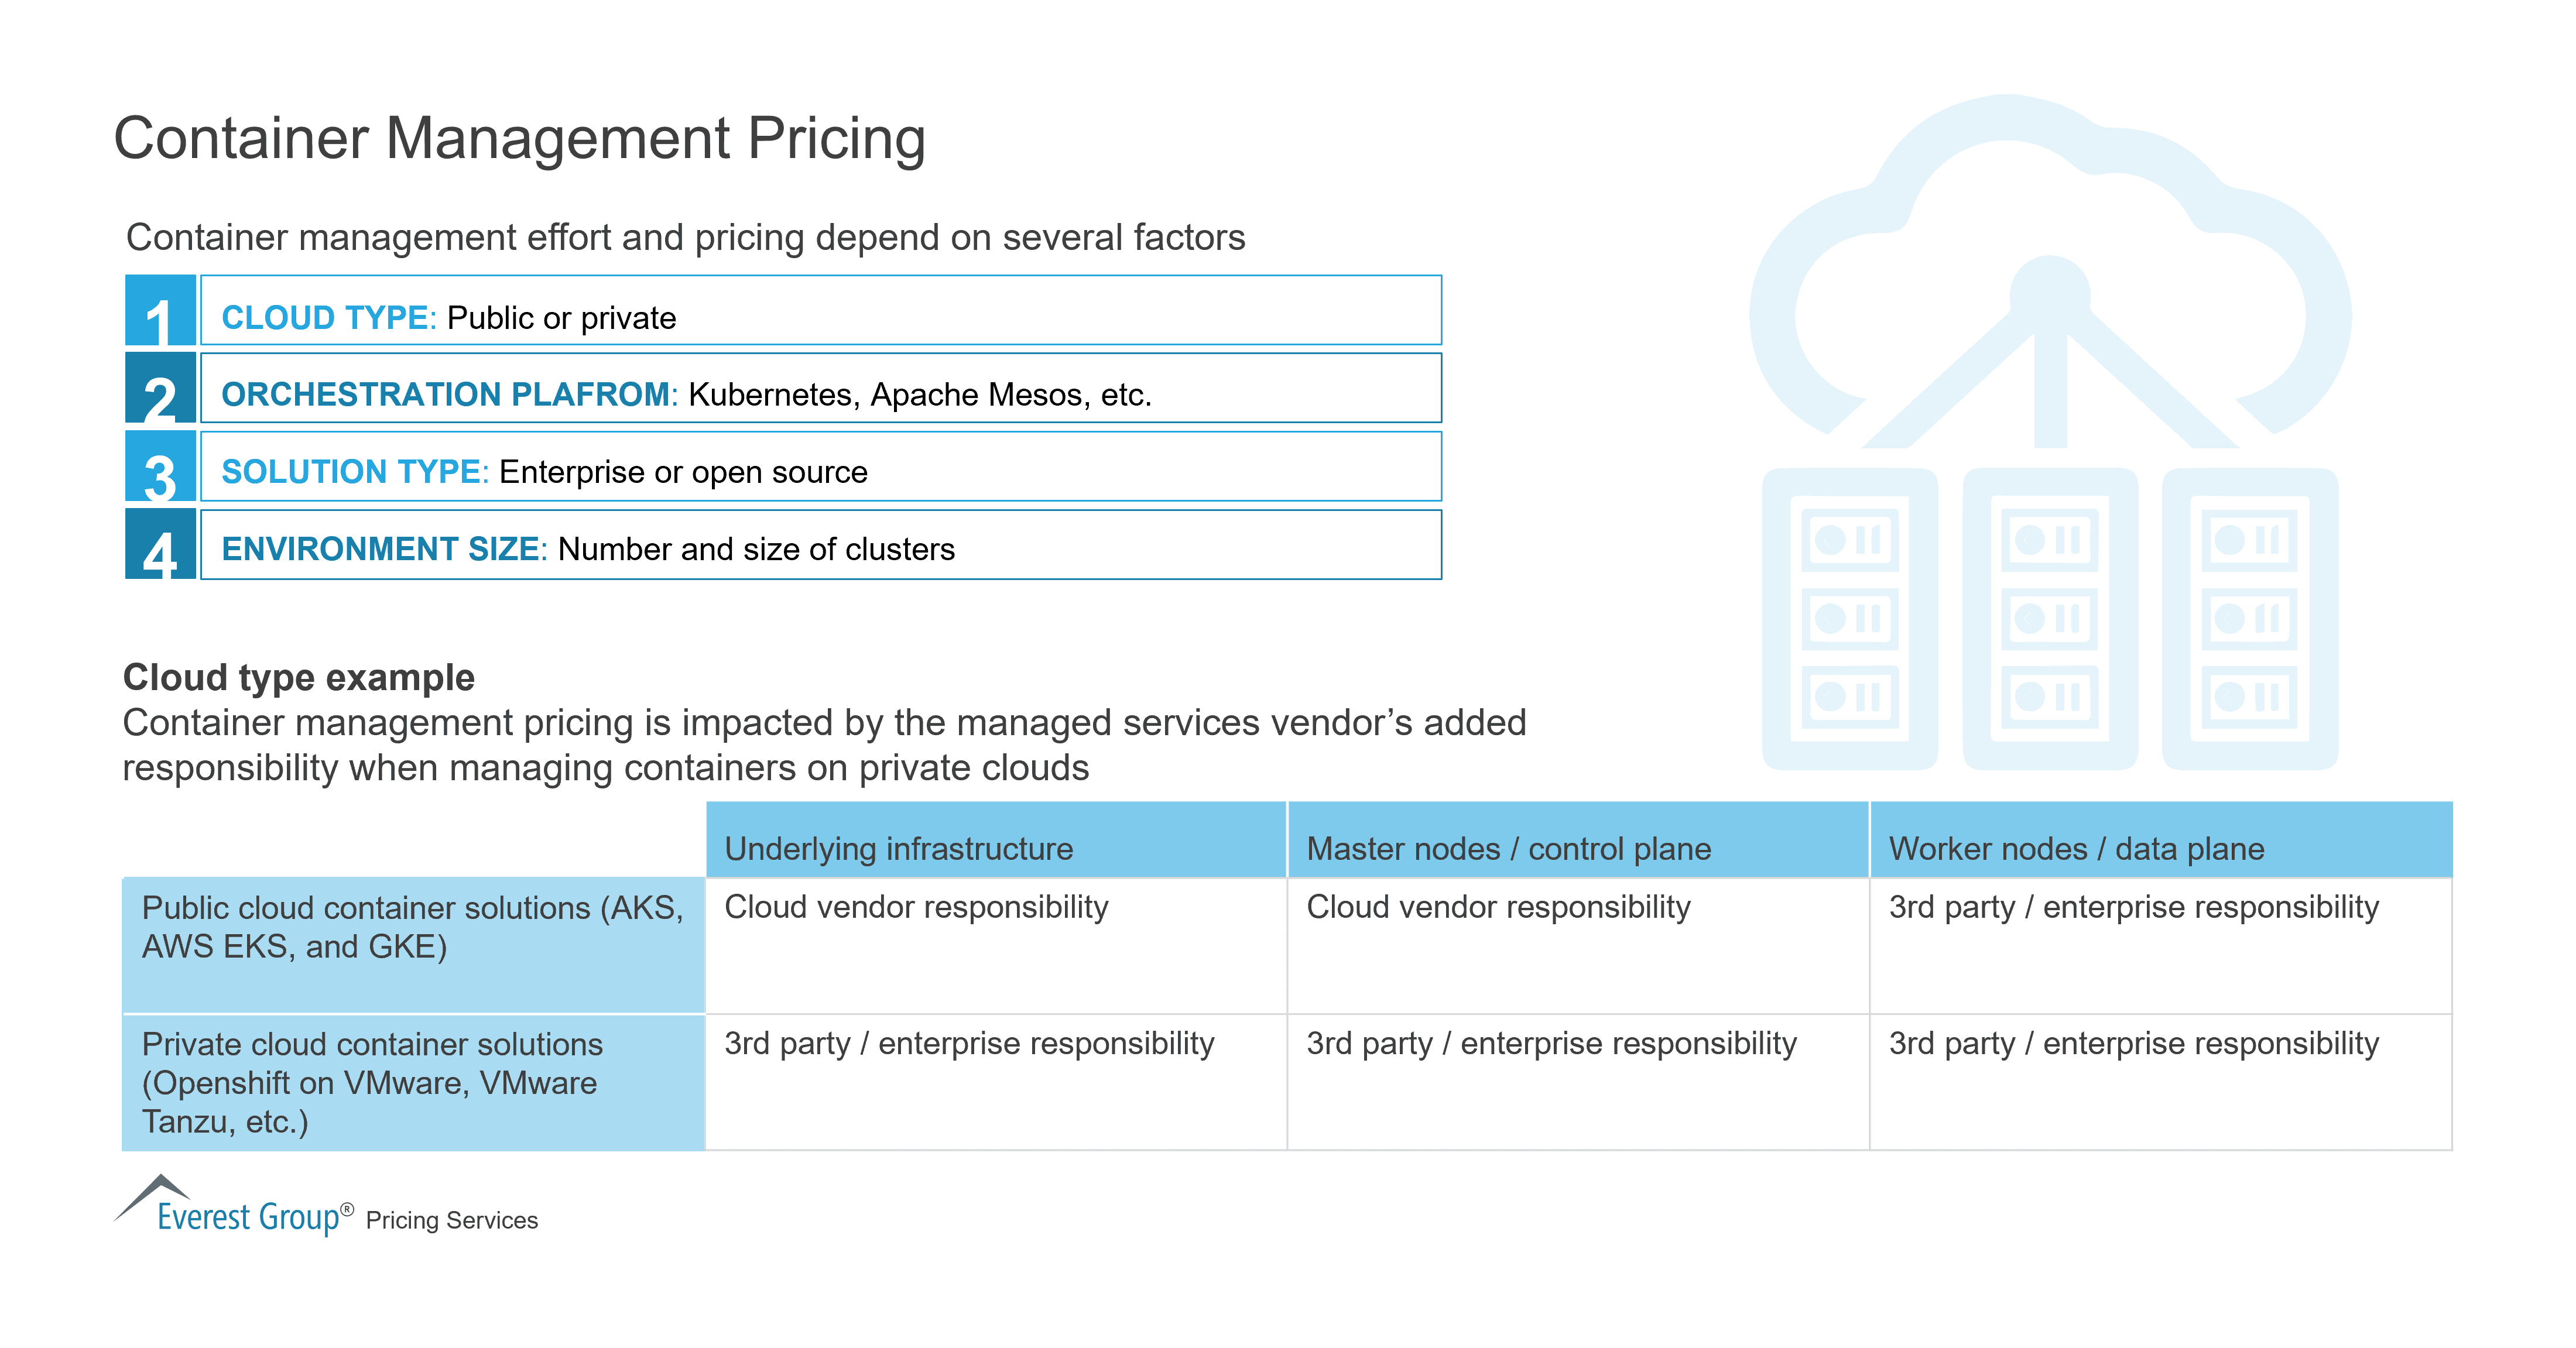 Container Management Pricing